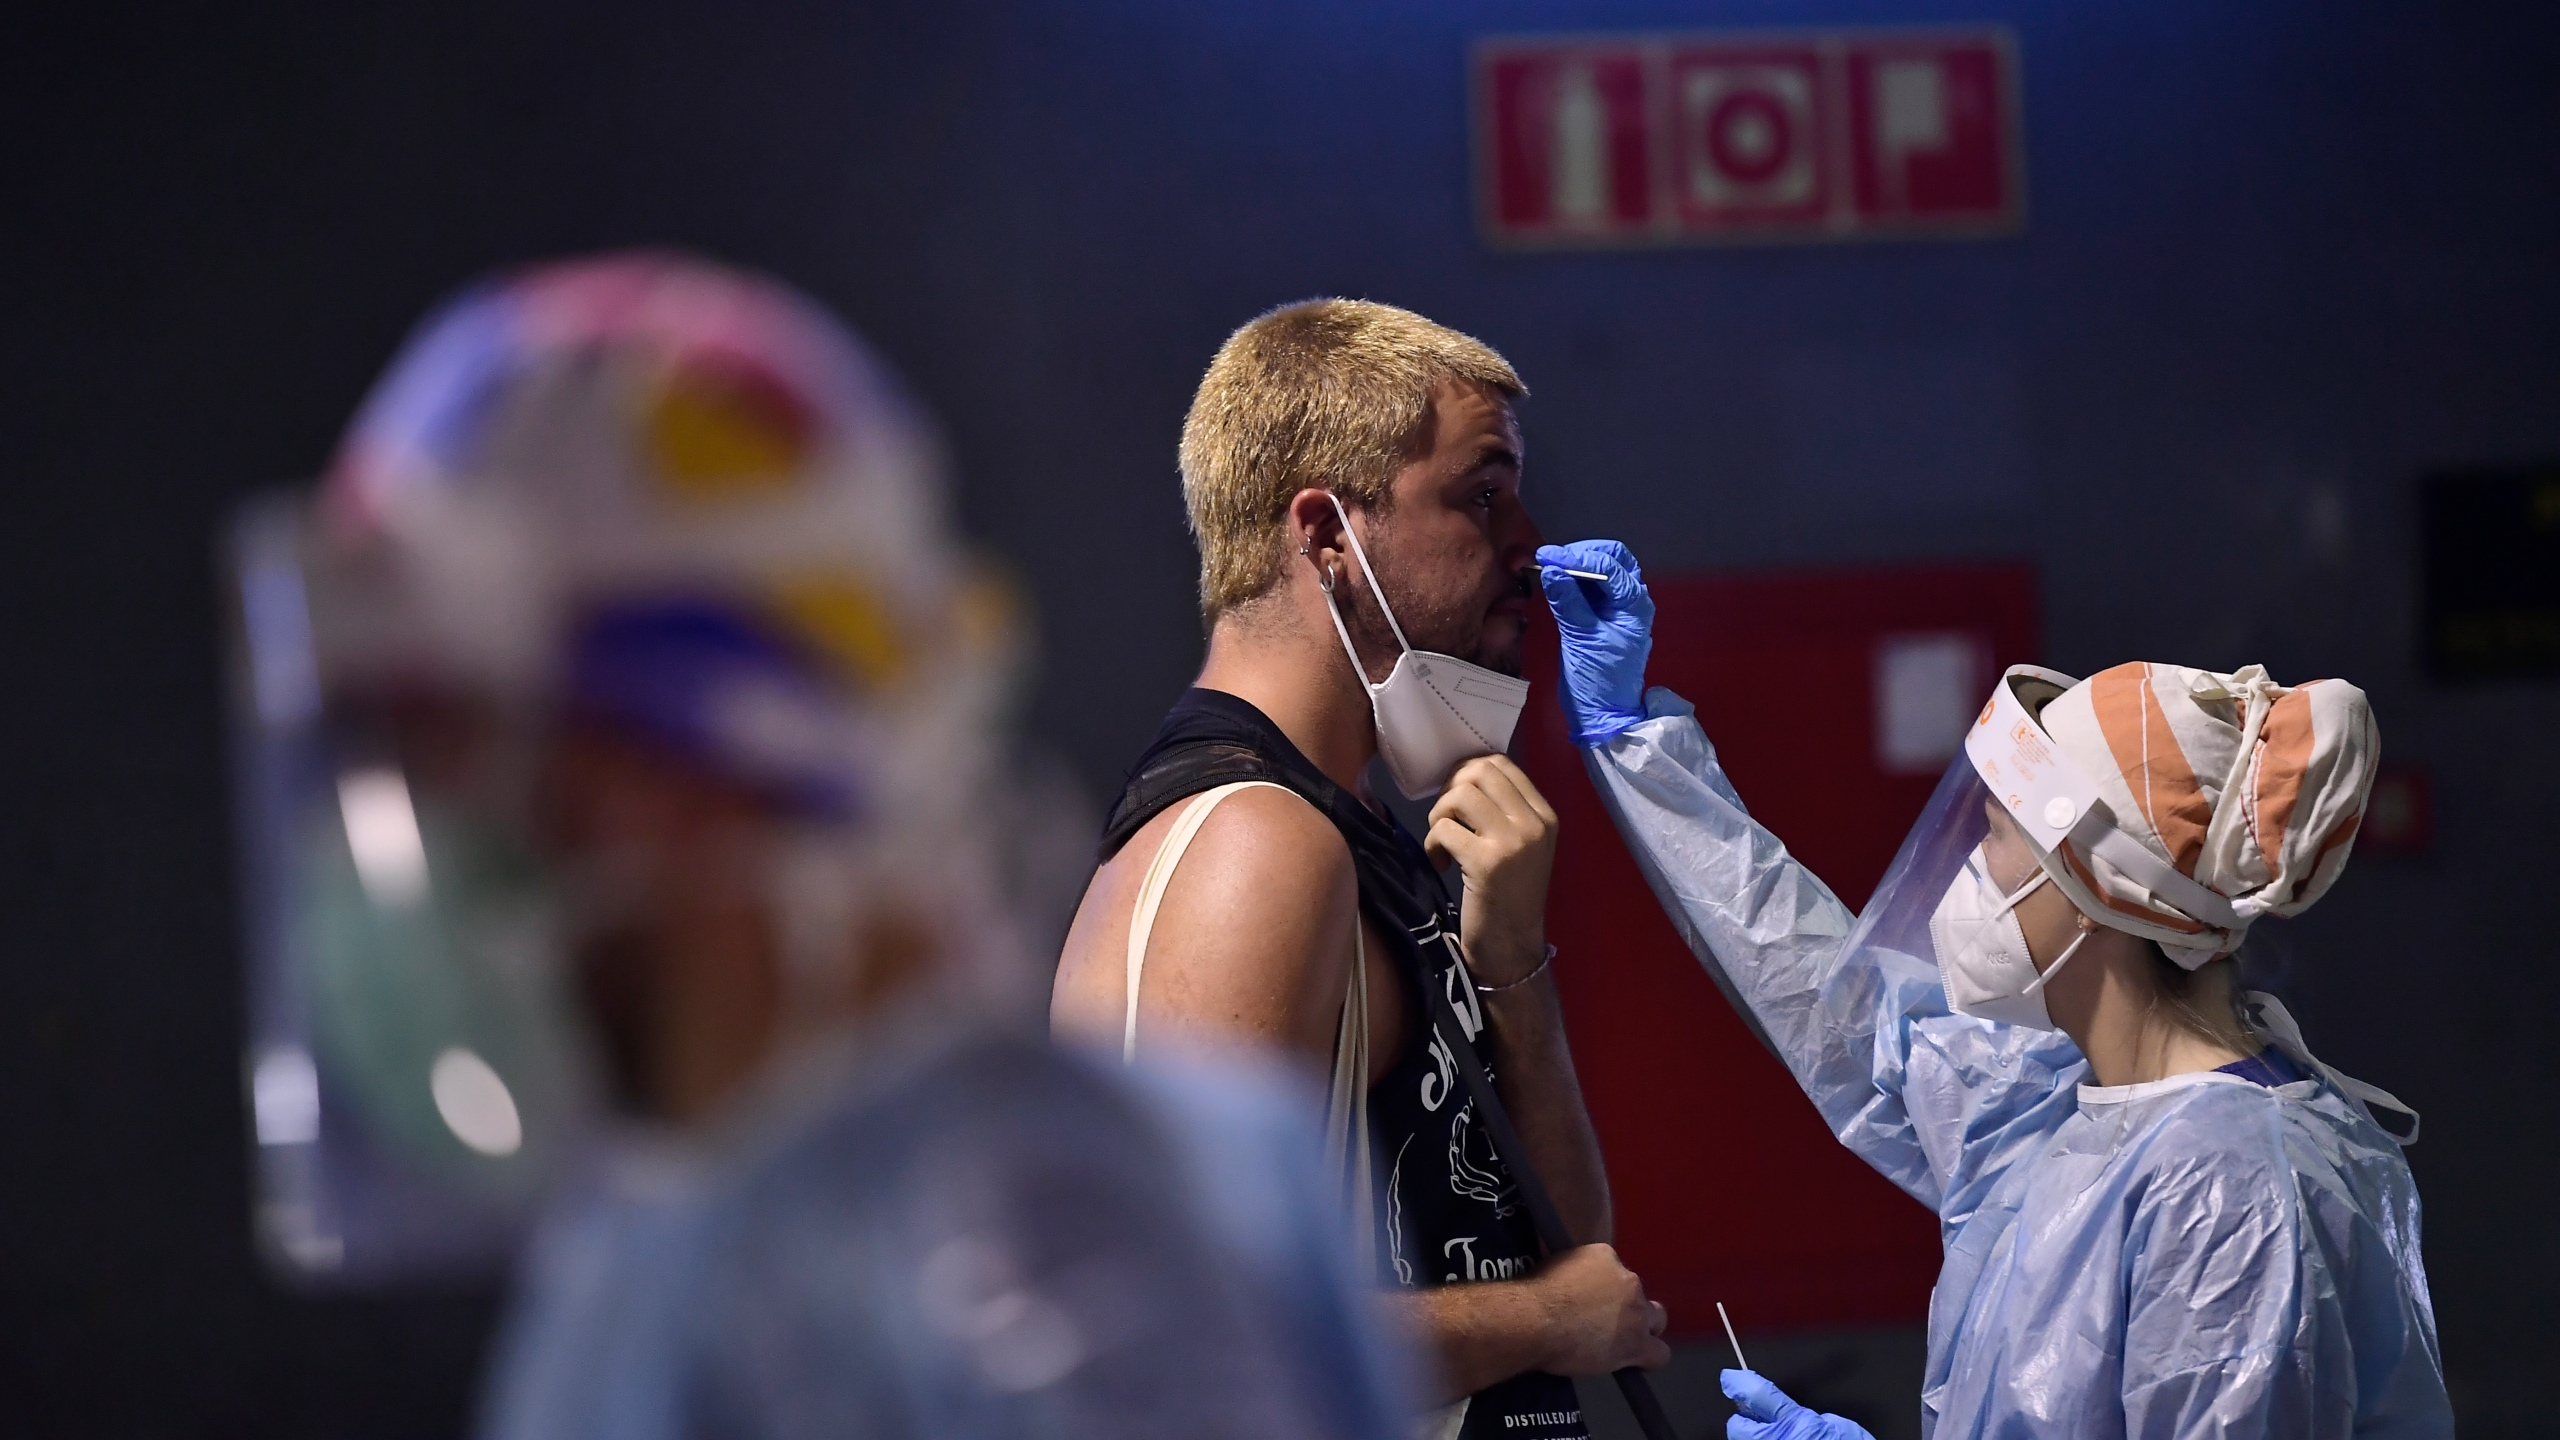 A health worker takes a swab from a teenager during a rapid antigen test for COVID-19 at bus station in Pamplona, northern Spain, on July 4, 2021. (Alvaro Barrientos / Associated Press)